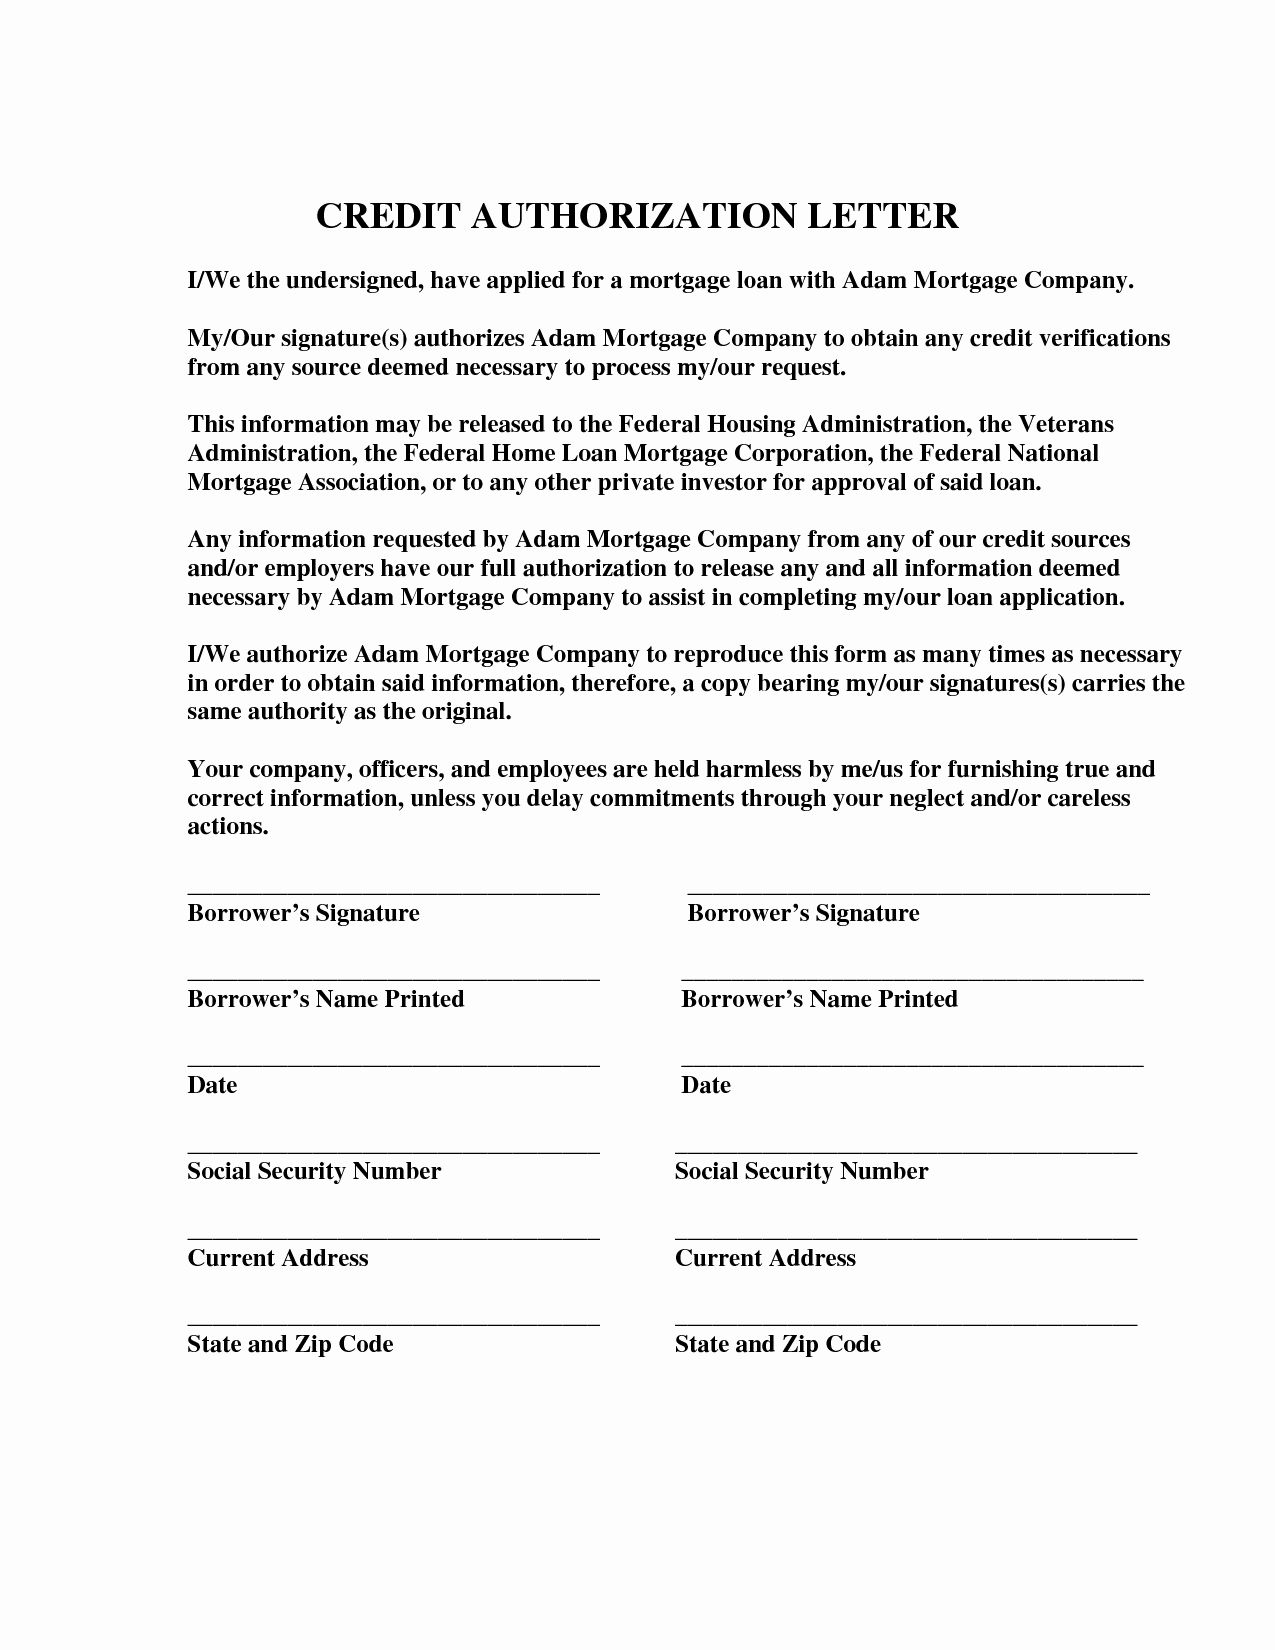 Credit Card Authorization Letter Template Luxury Credit Card Authorization Letter Format Best Template Lettering Free Business Card Templates Letter Templates